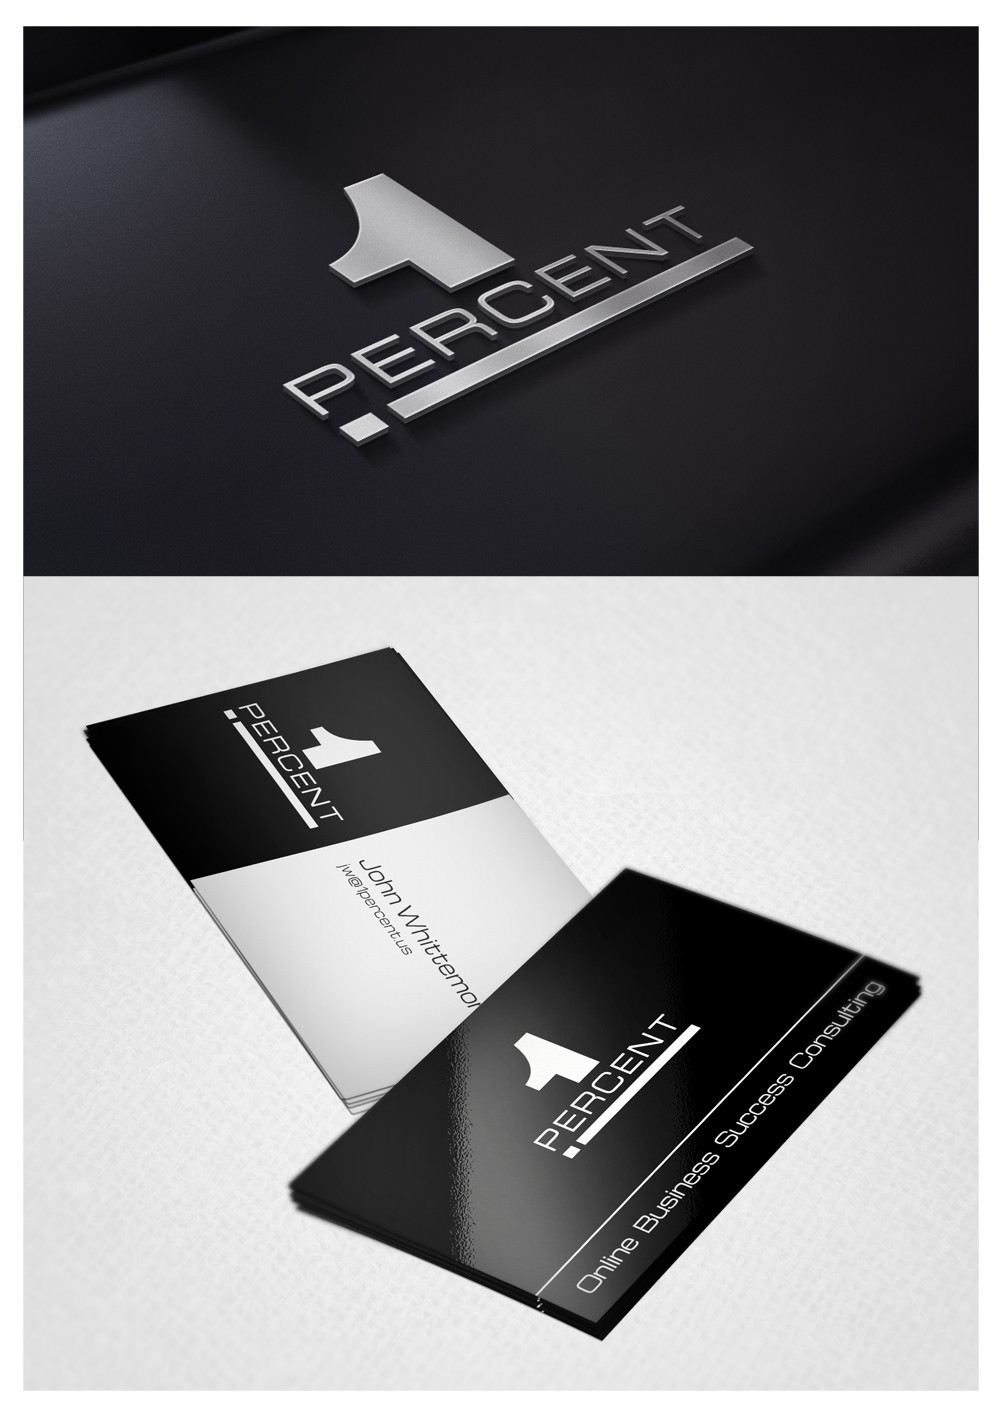 Help 1 Percent with a new logo and business card